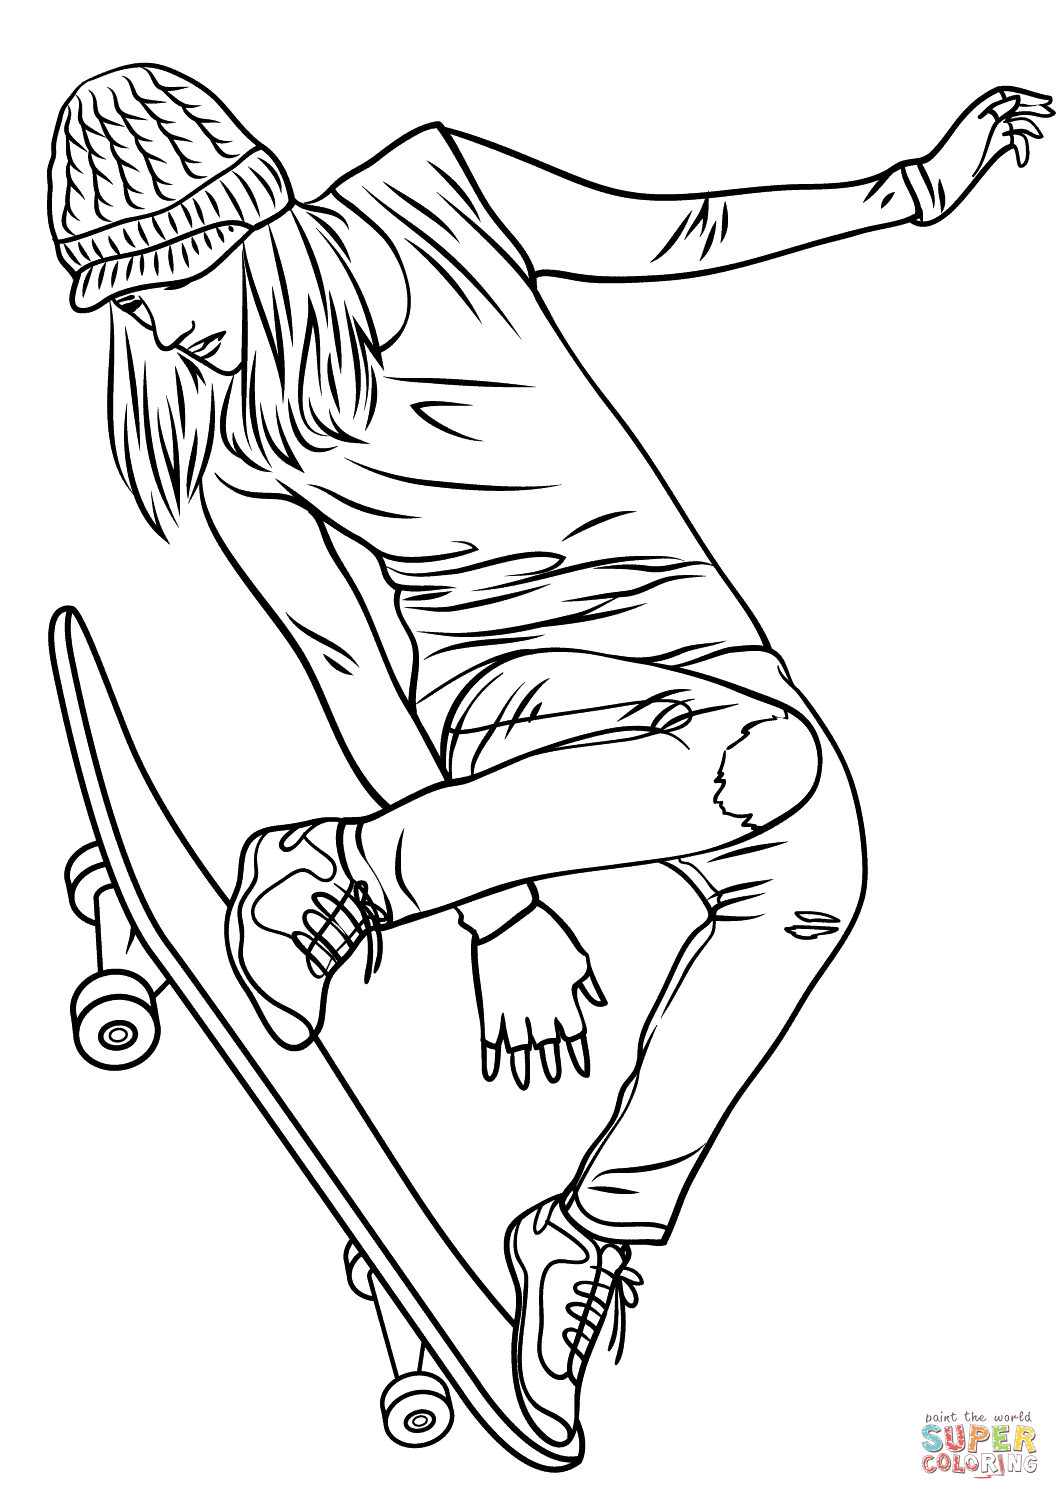 Girl Skateboarding Coloring Page | Free Printable Coloring Pages ...